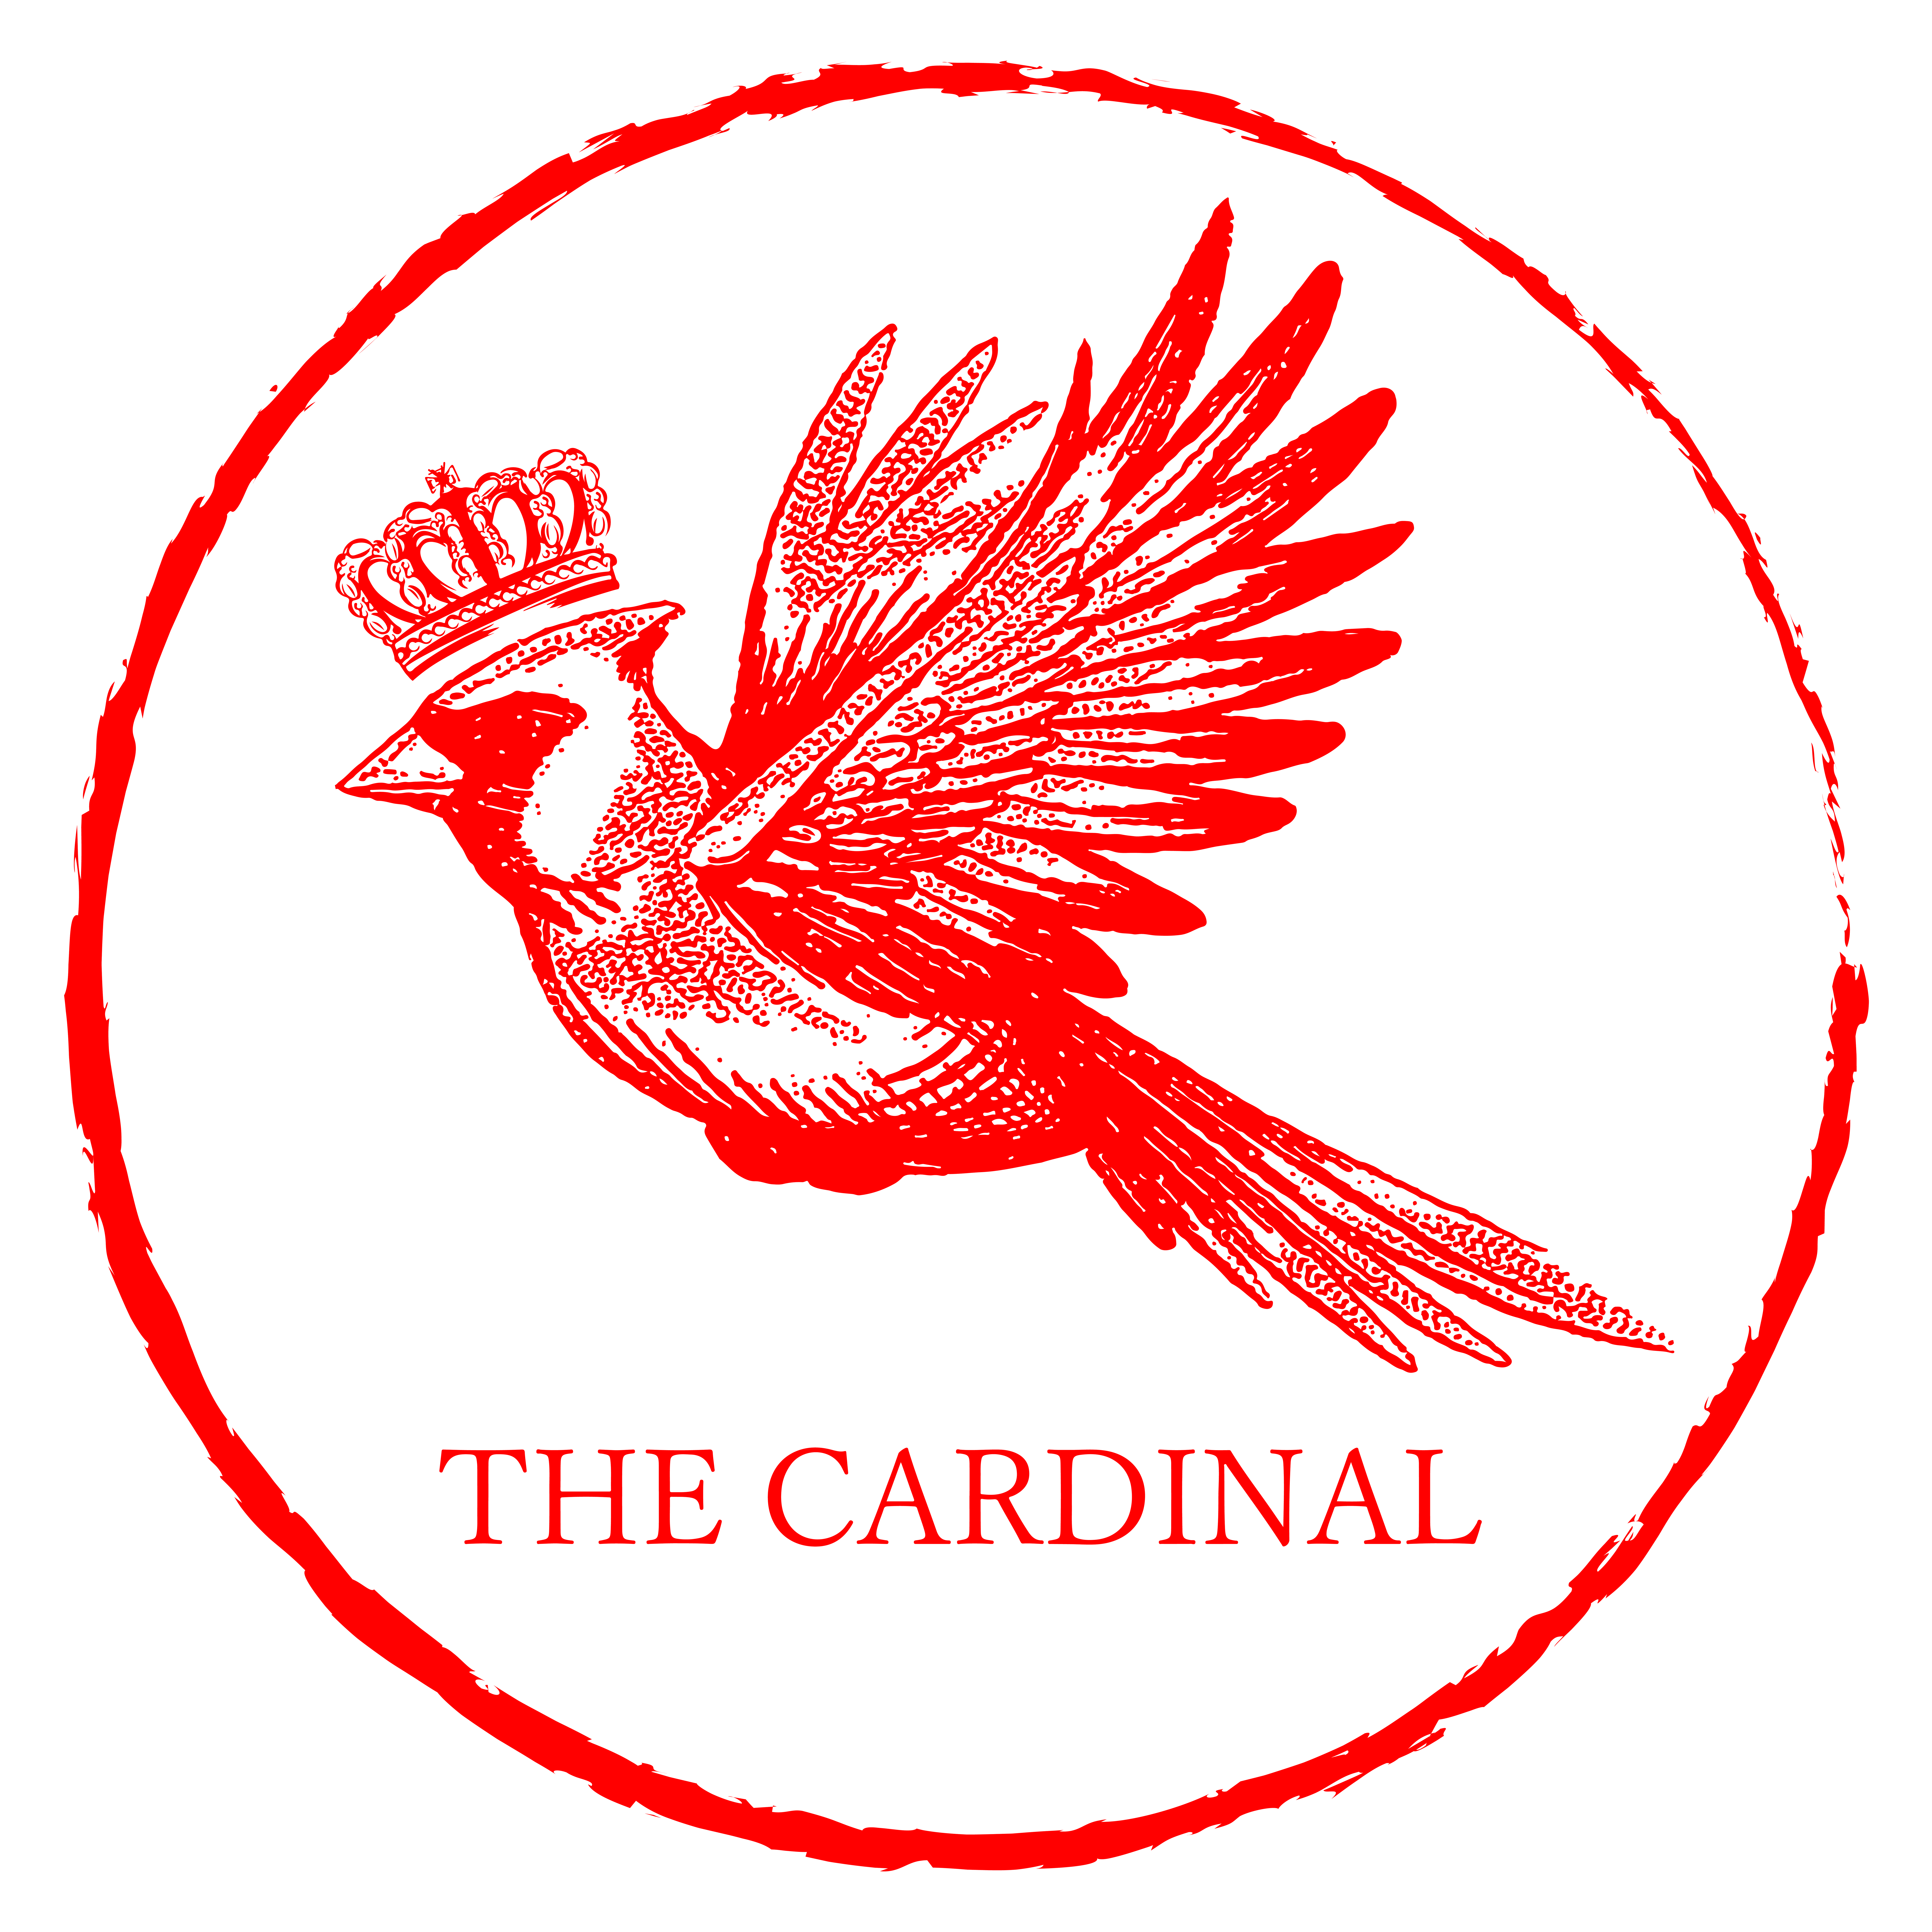 The Cardinal Gallery company logo